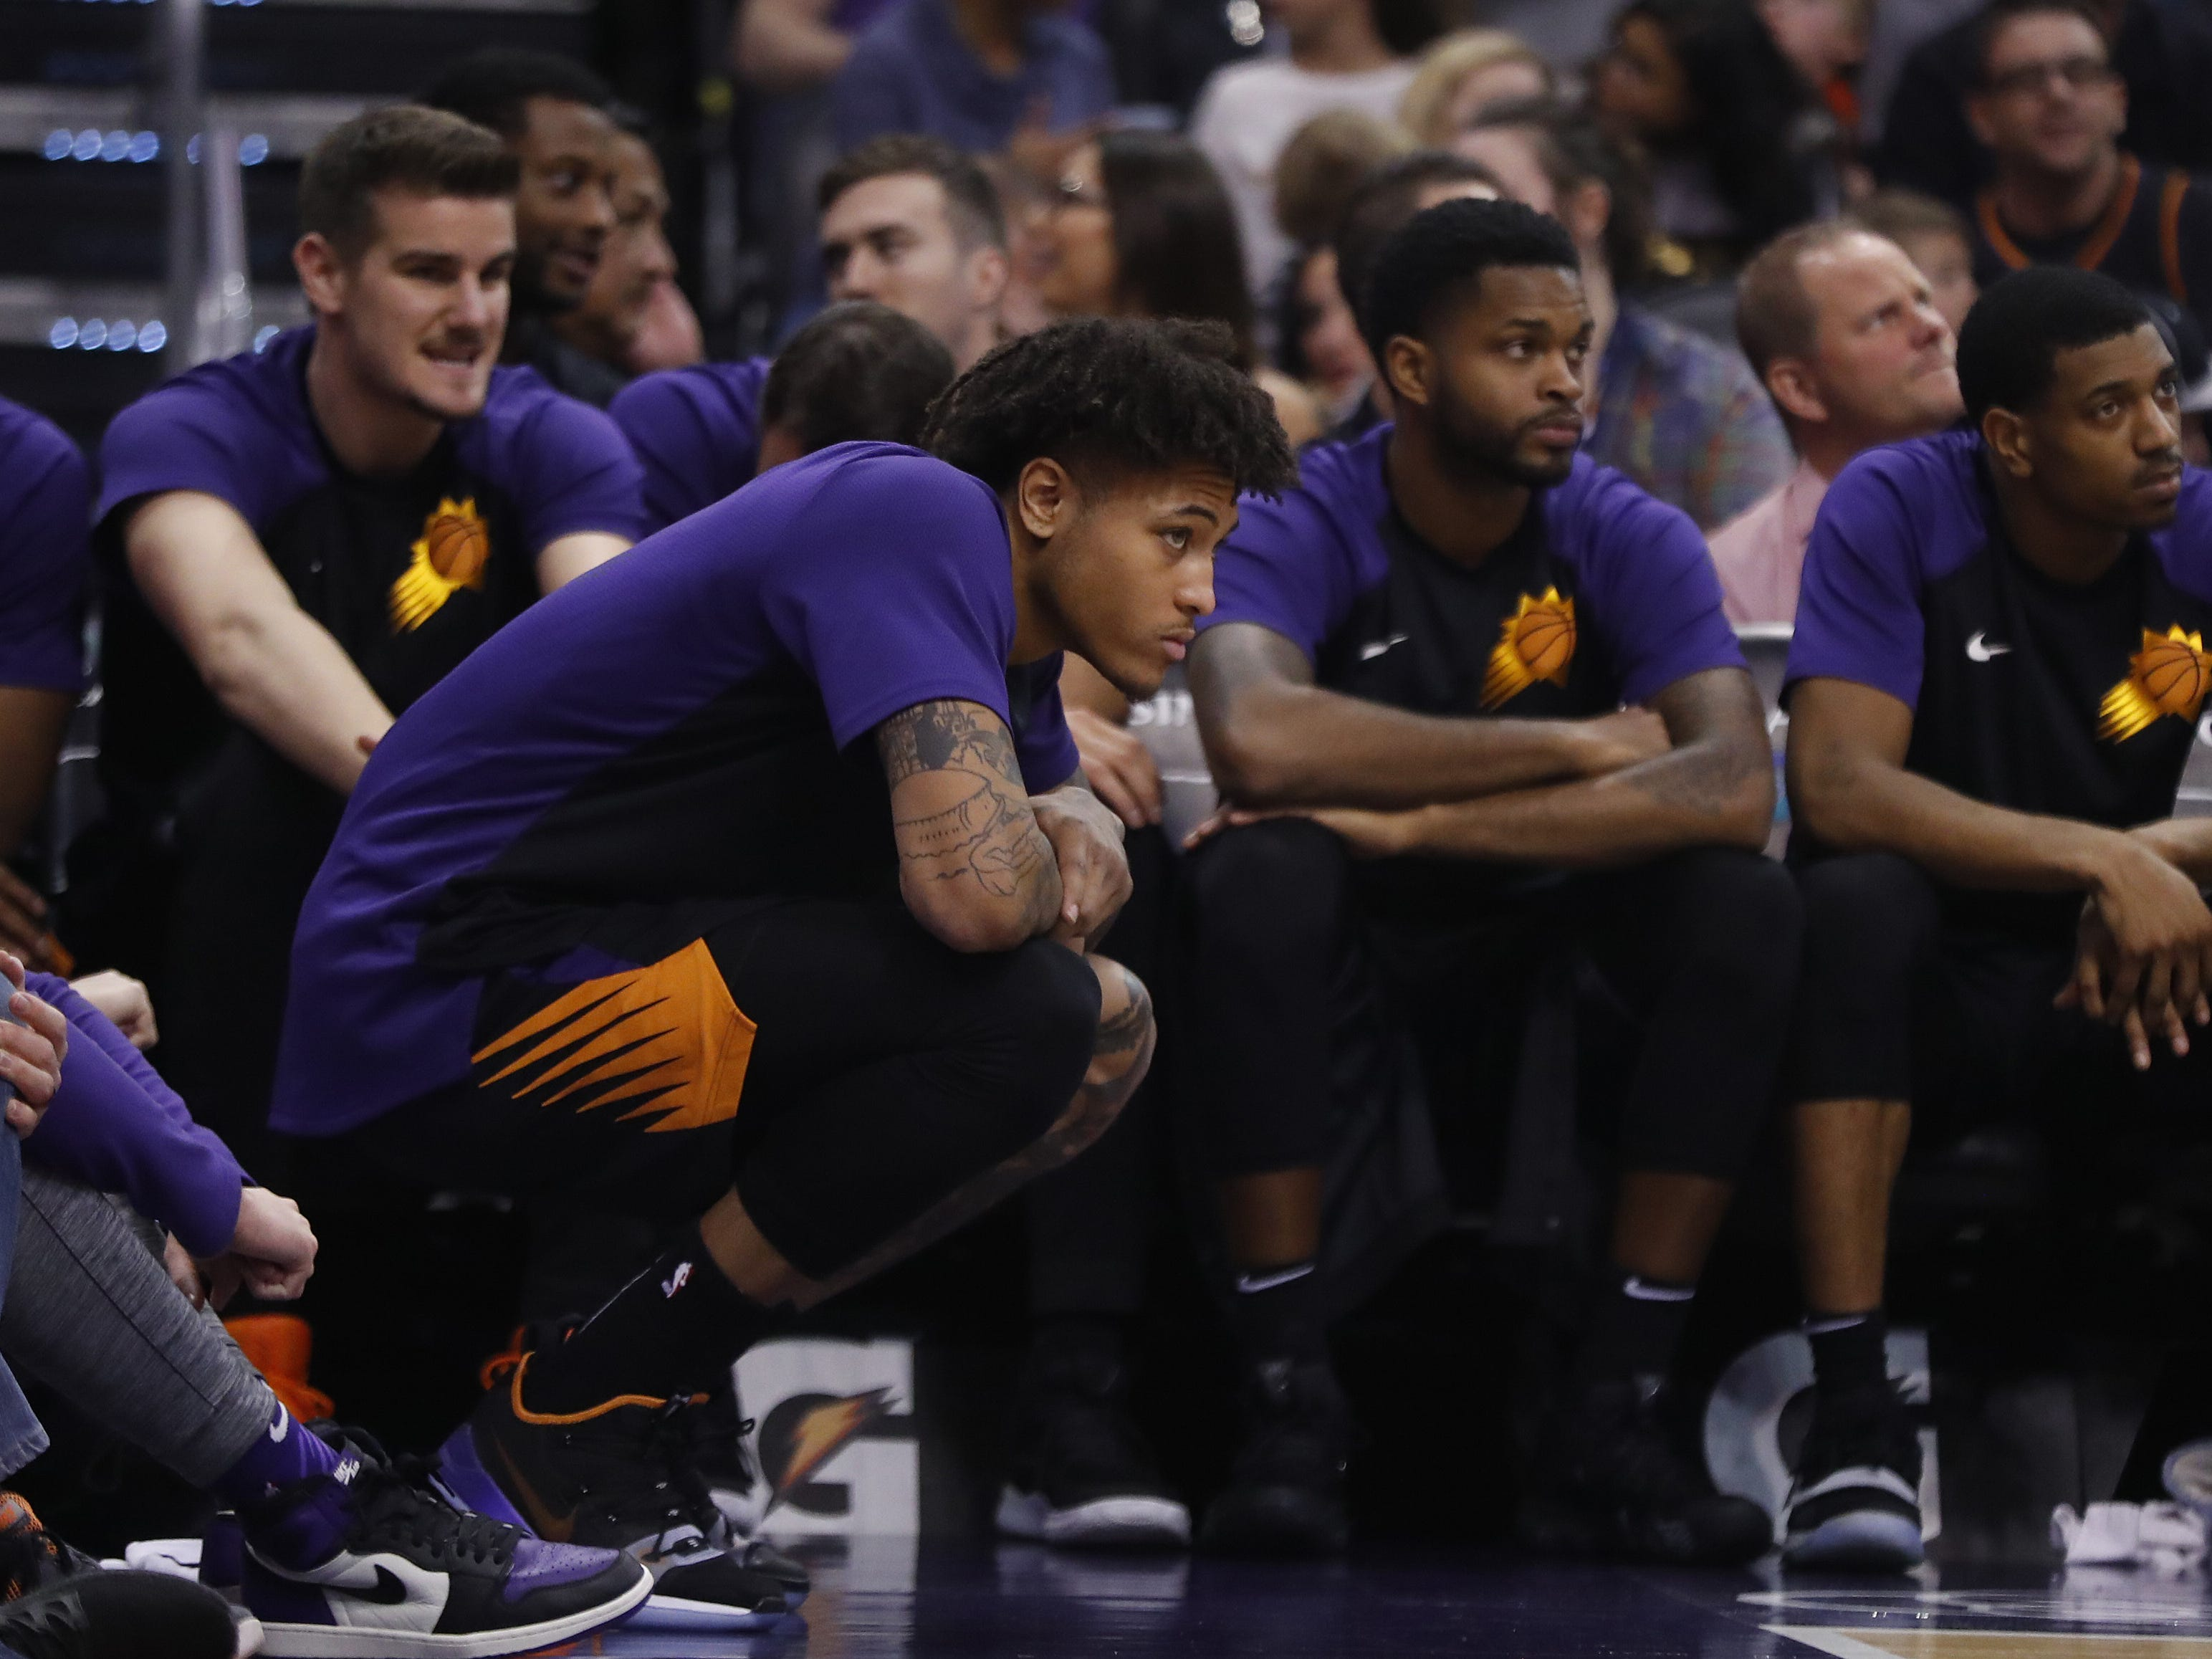 Suns' Kelly Oubre Jr. watches the court from the bench during the second half against the Clippers at Talking Stick Resort Arena in Phoenix, Ariz. on January 4, 2019.